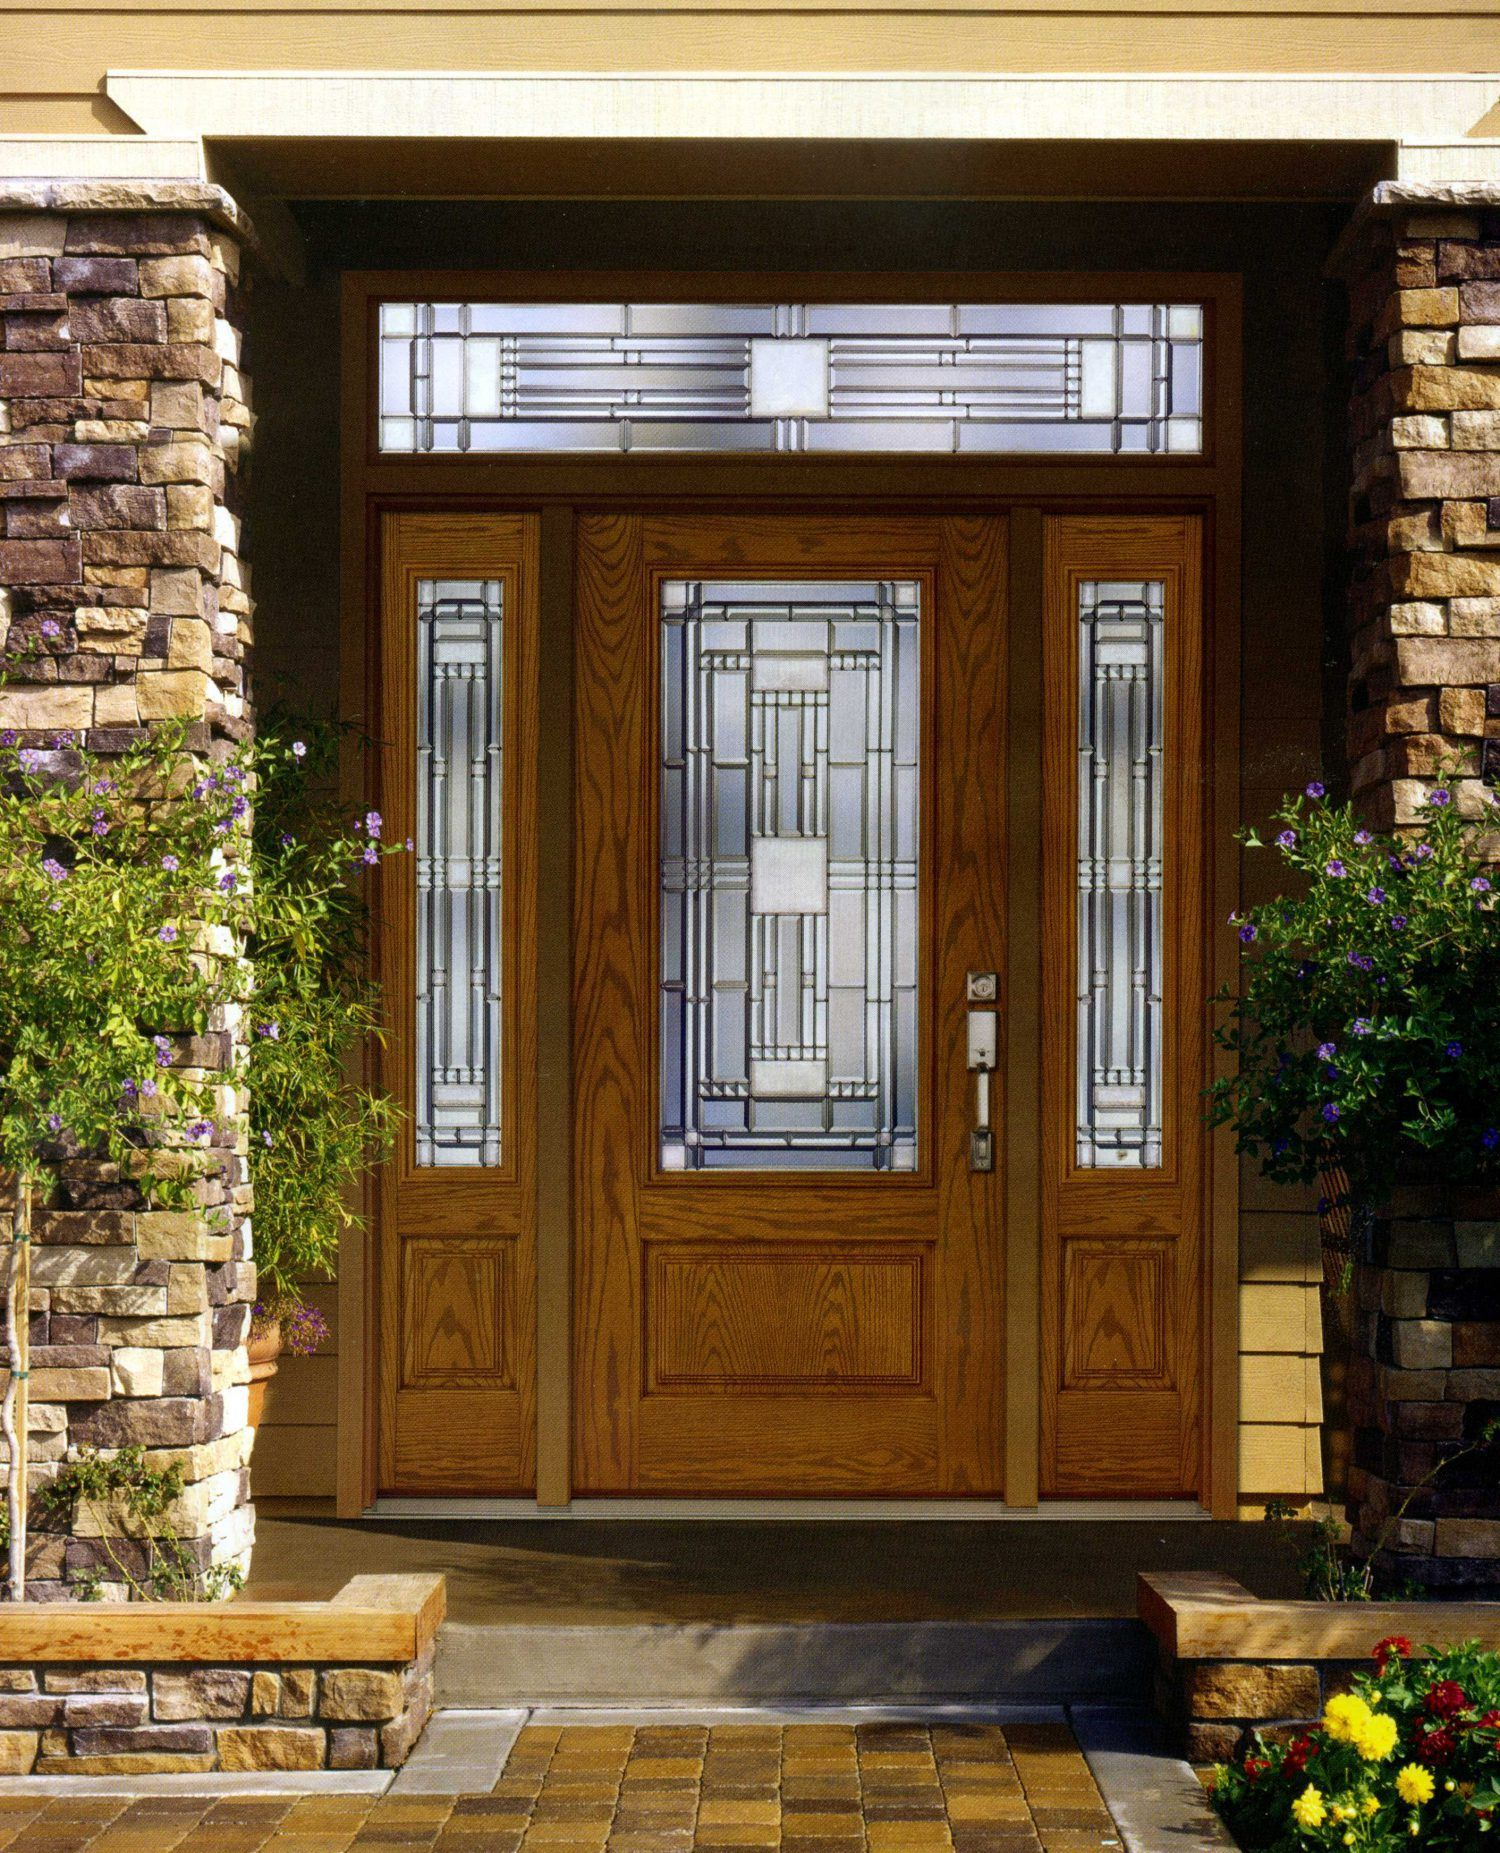 Best entrance door. How to choose a reliable and high-quality entrance door 60